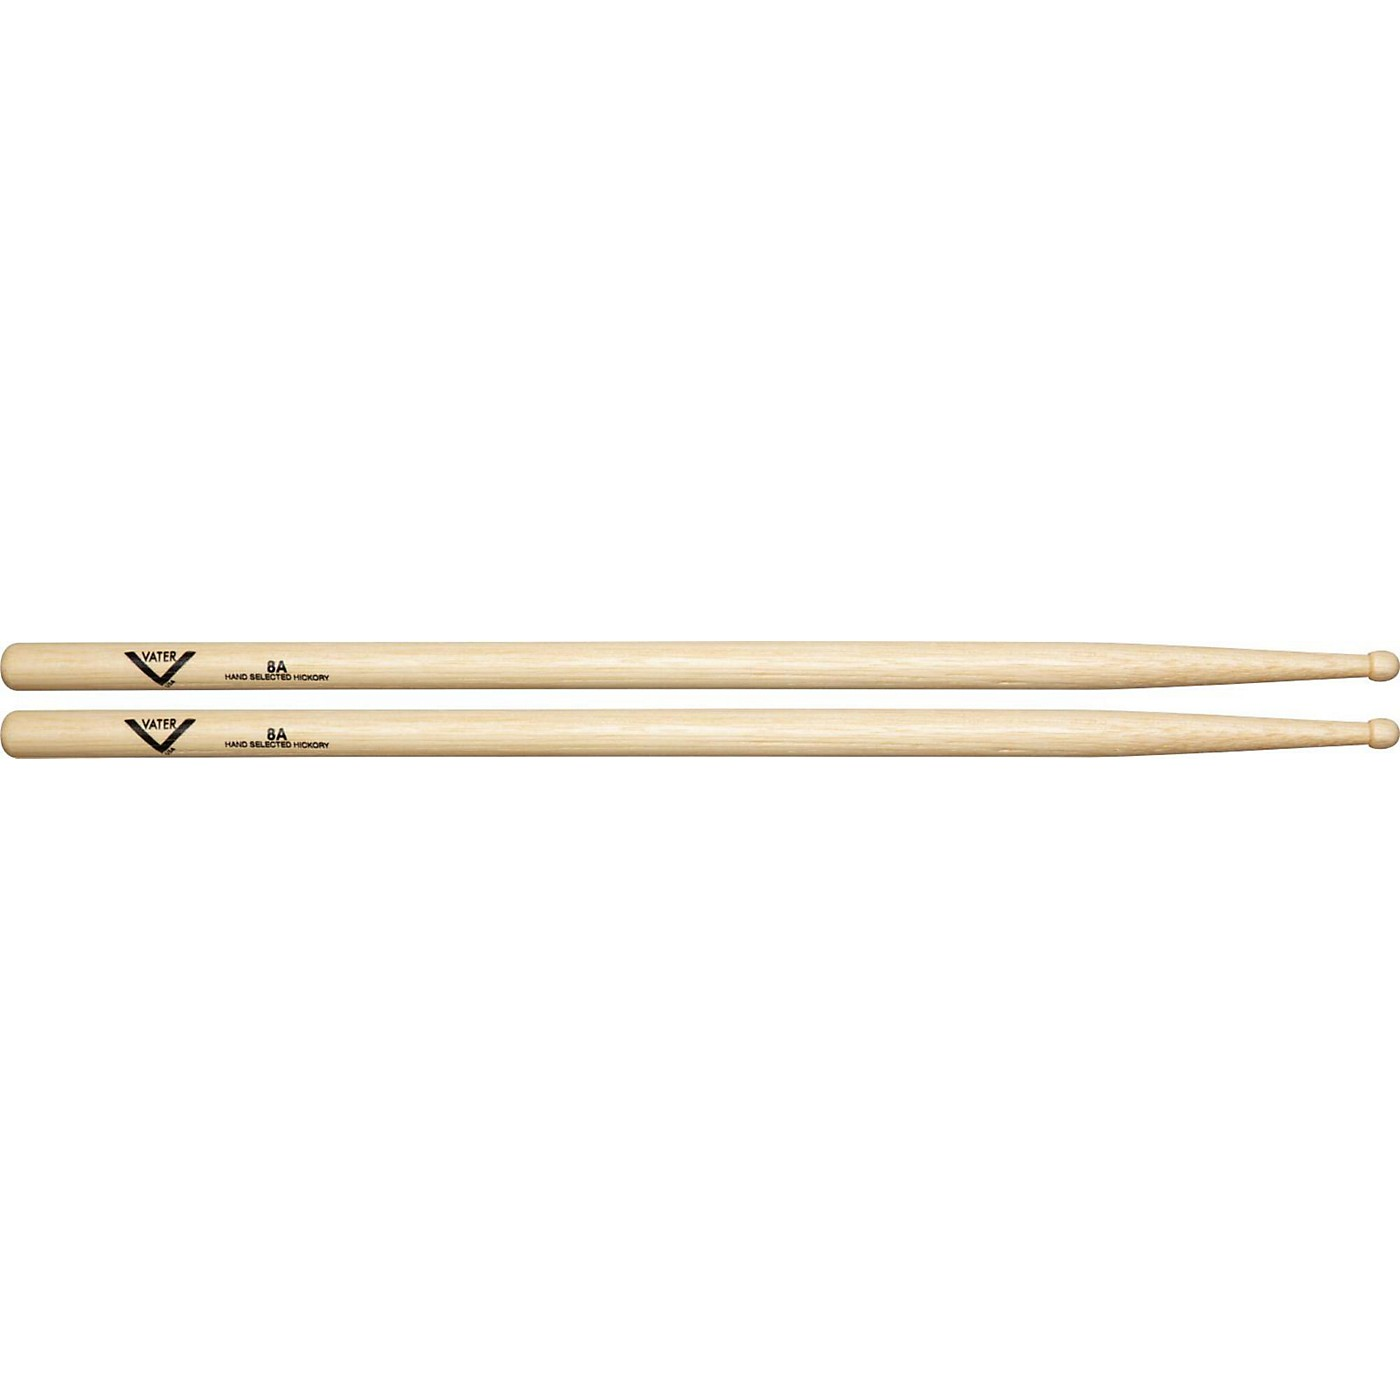 Vater American Hickory 8A Drumsticks thumbnail